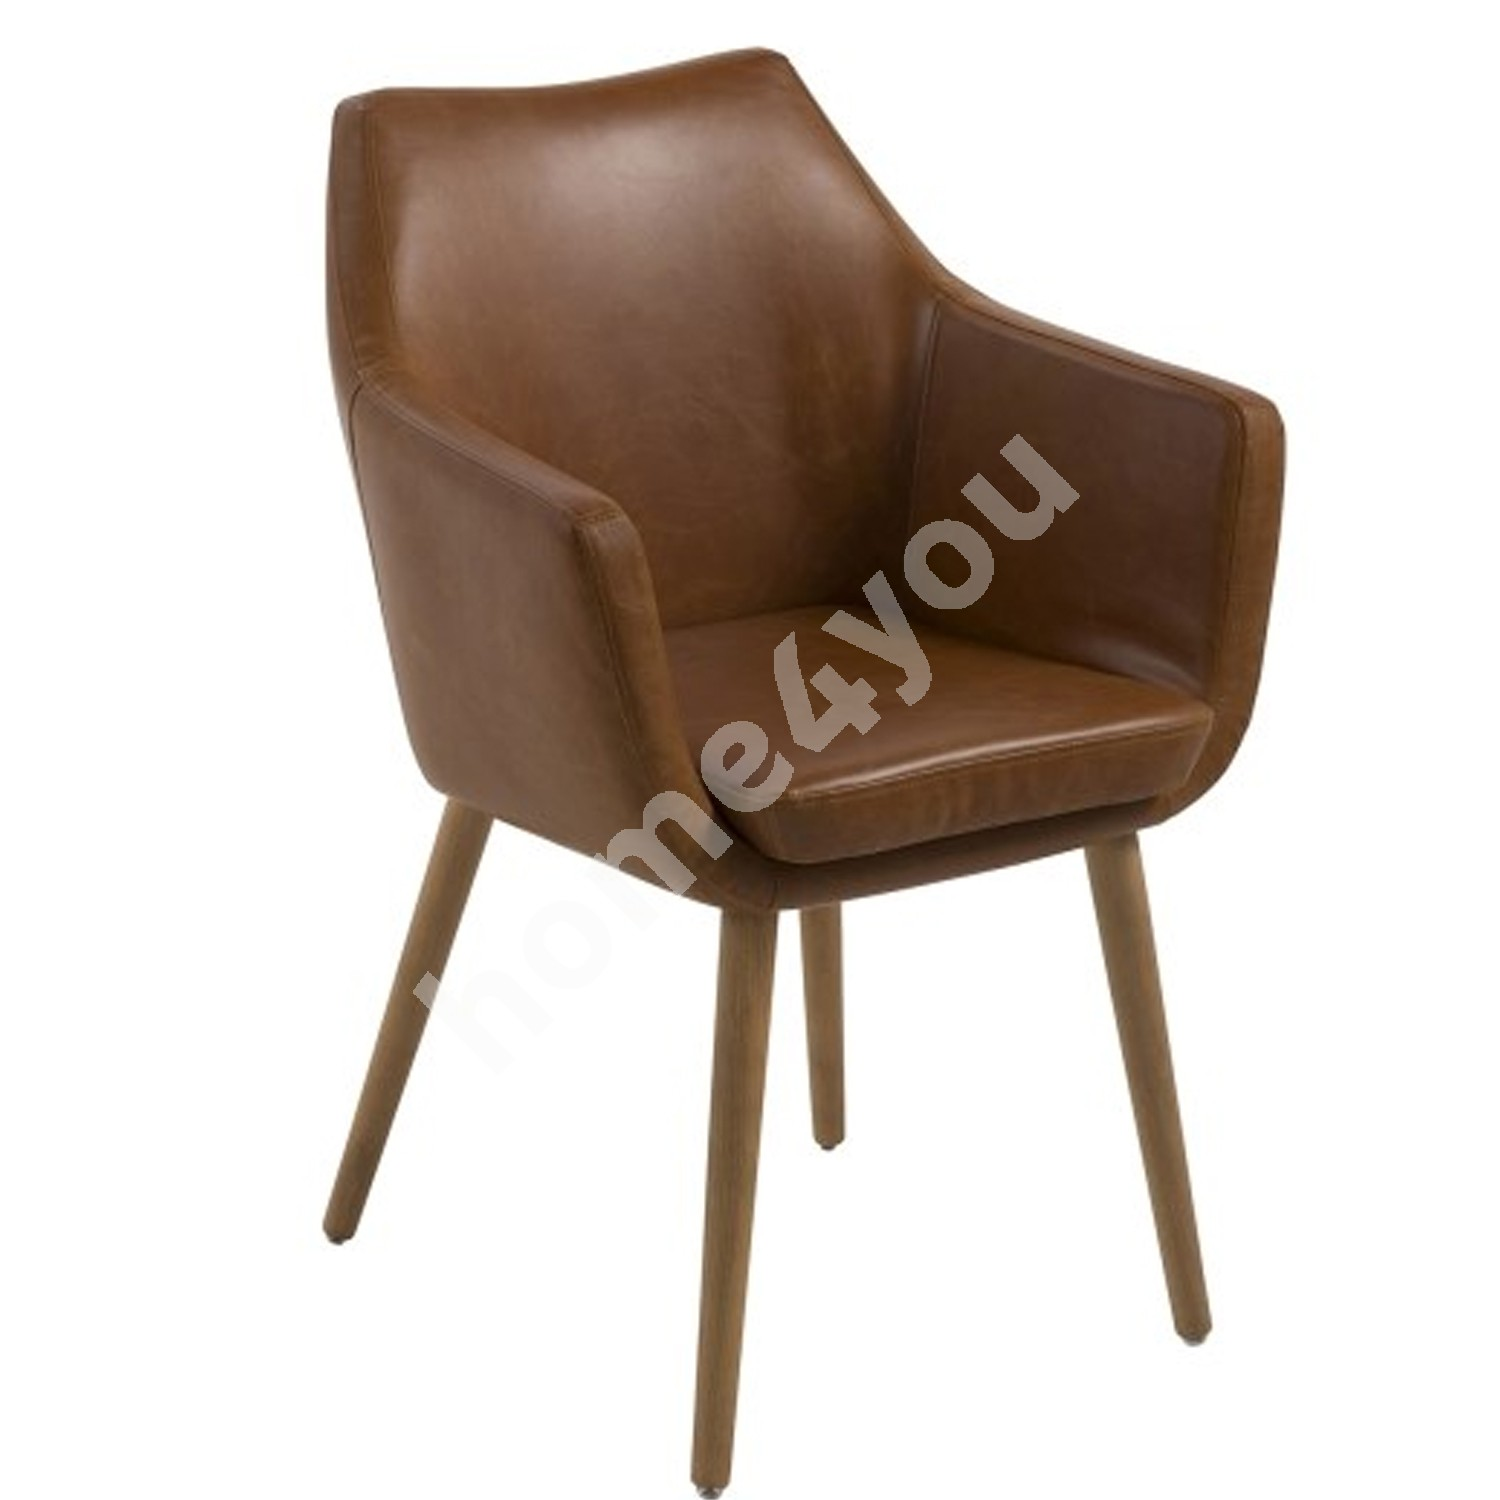 Armchair NORA 58x58x84cm, seat and backrest: imitation leather, color: brandy, legs: oak, finishing: oiled